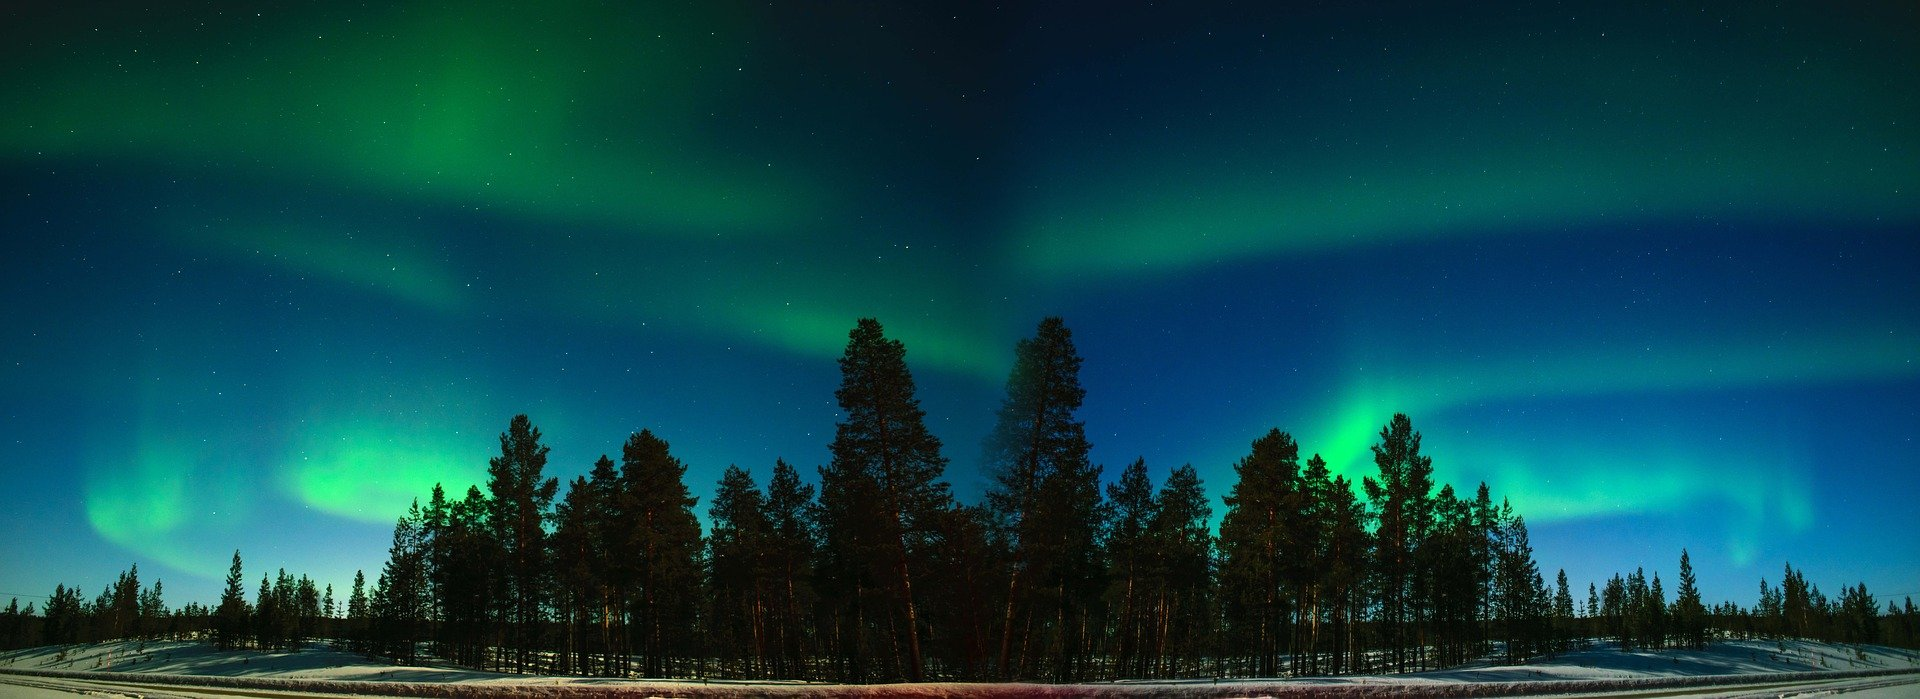 Lapland Finland Northern Lights